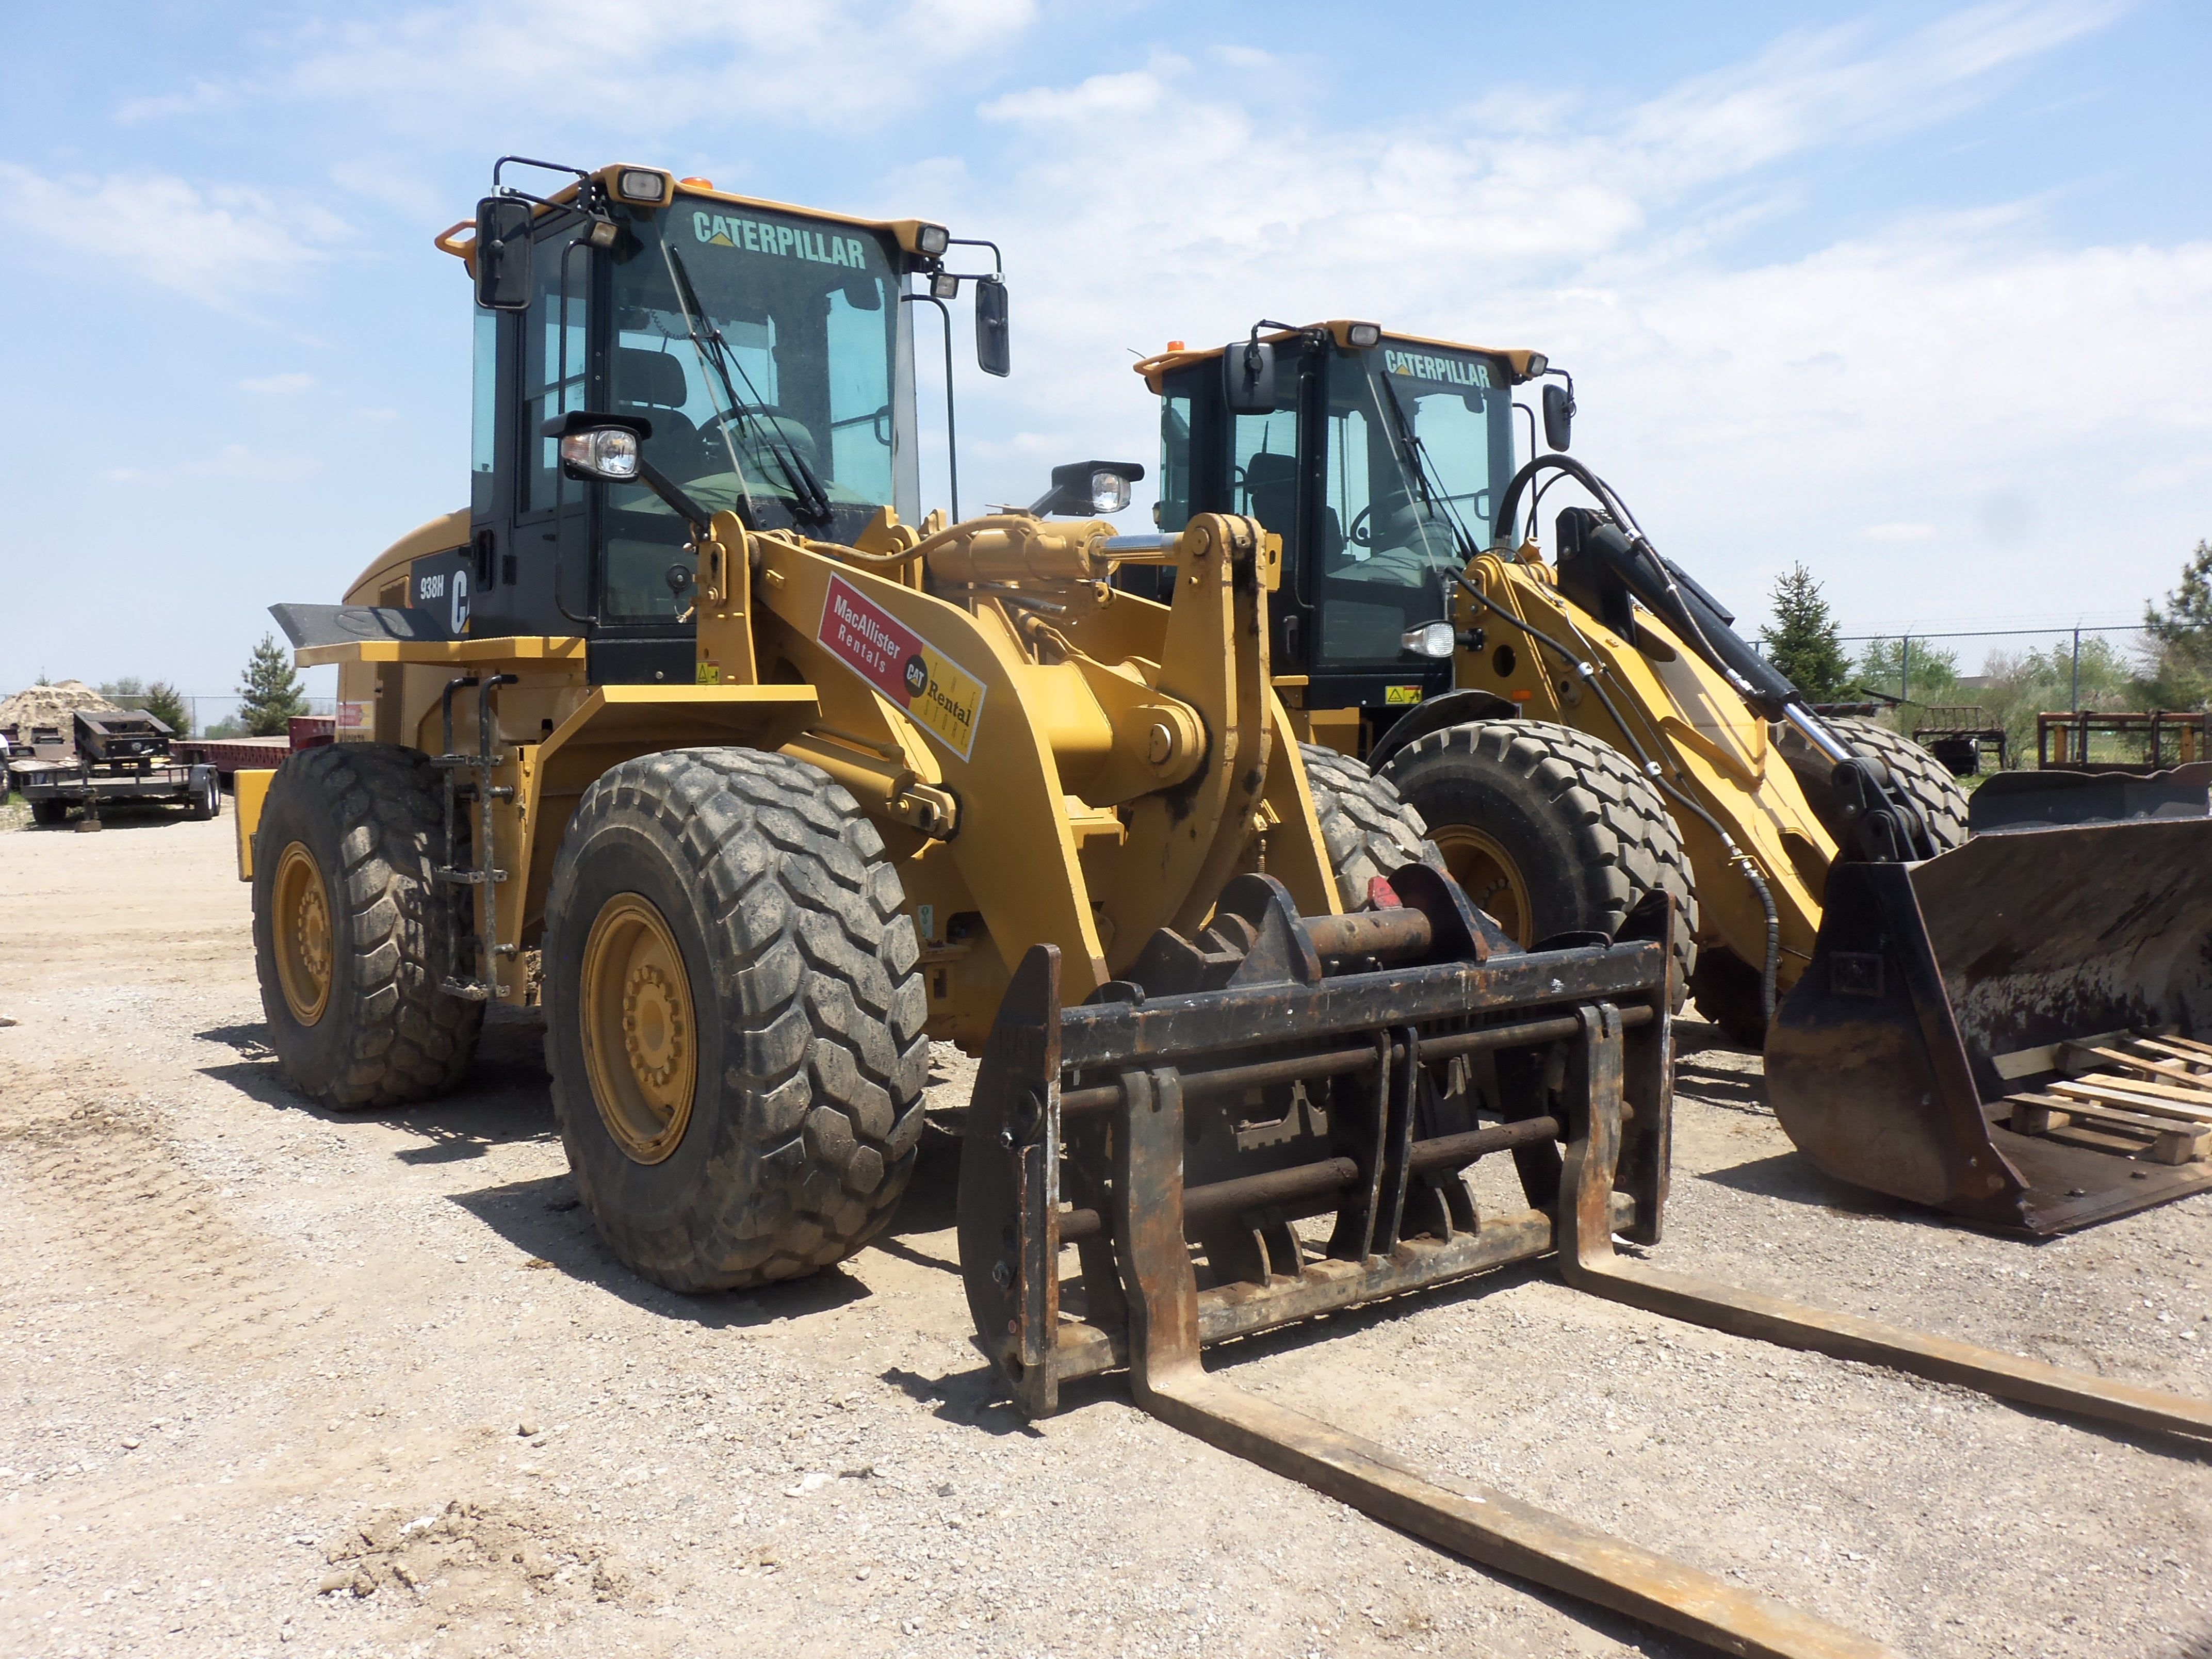 Caterpillar 838h Wheel Loader With Forks On The Front The